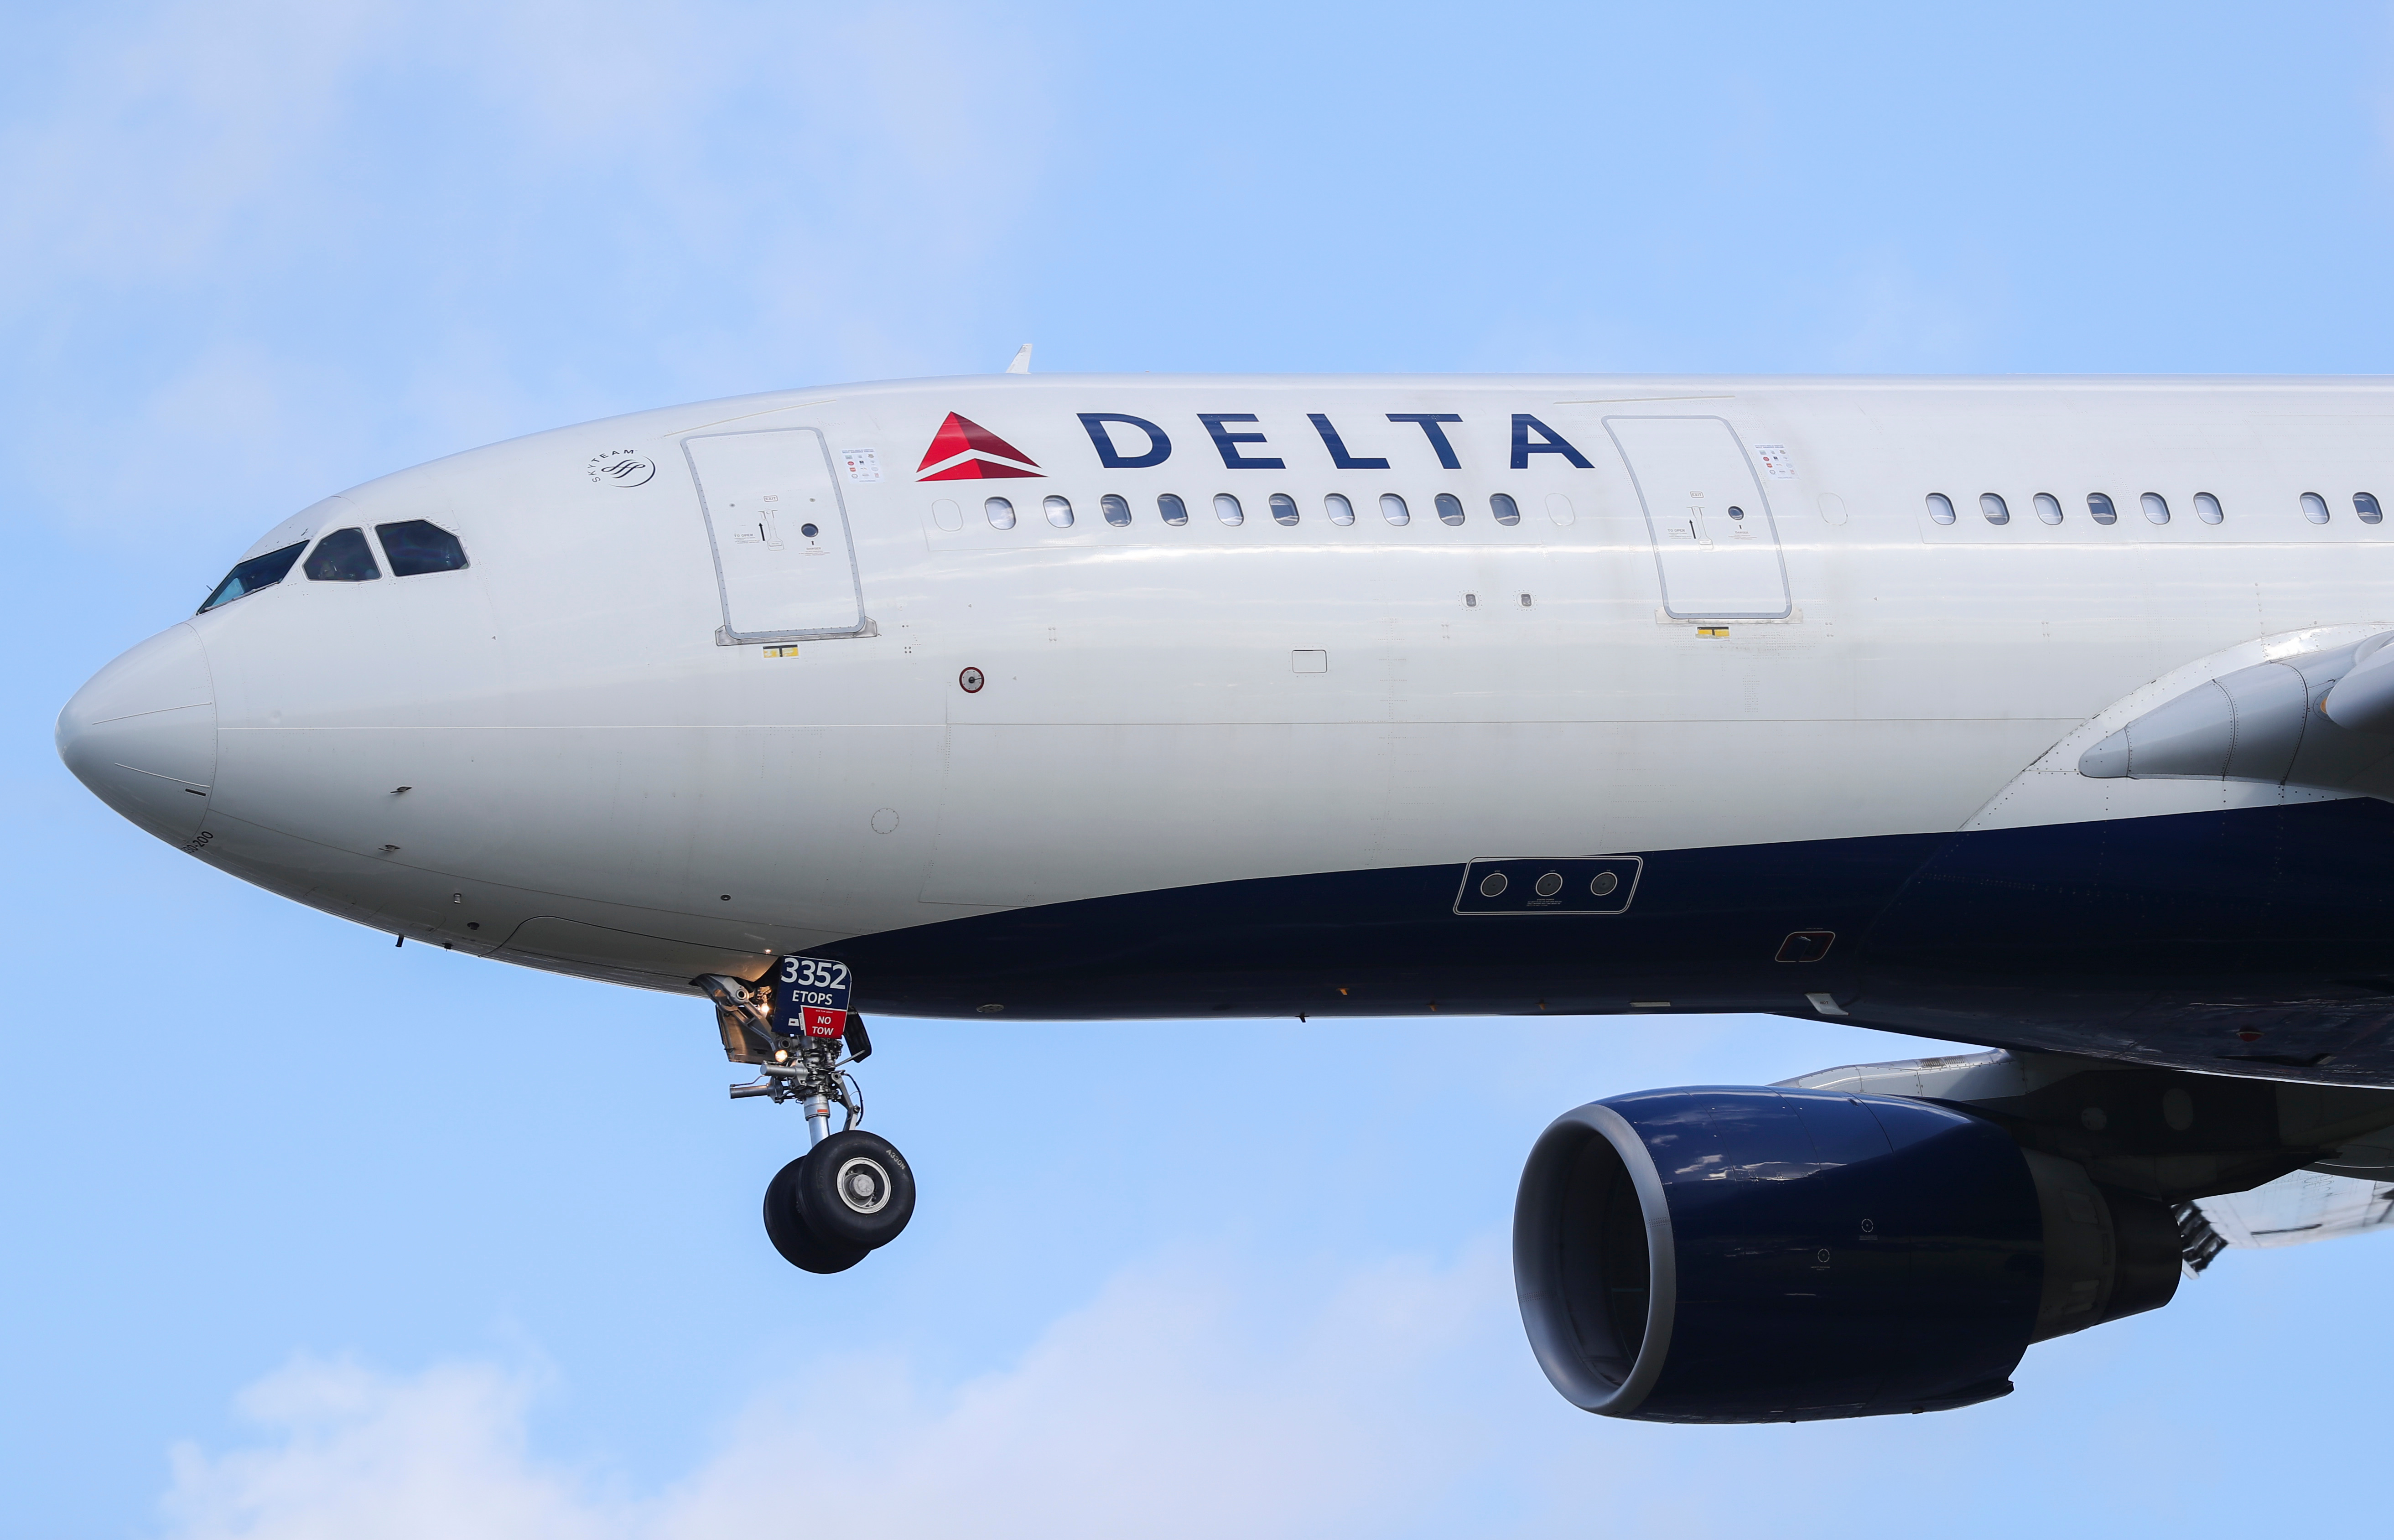 A Delta Airlines plane in flight.